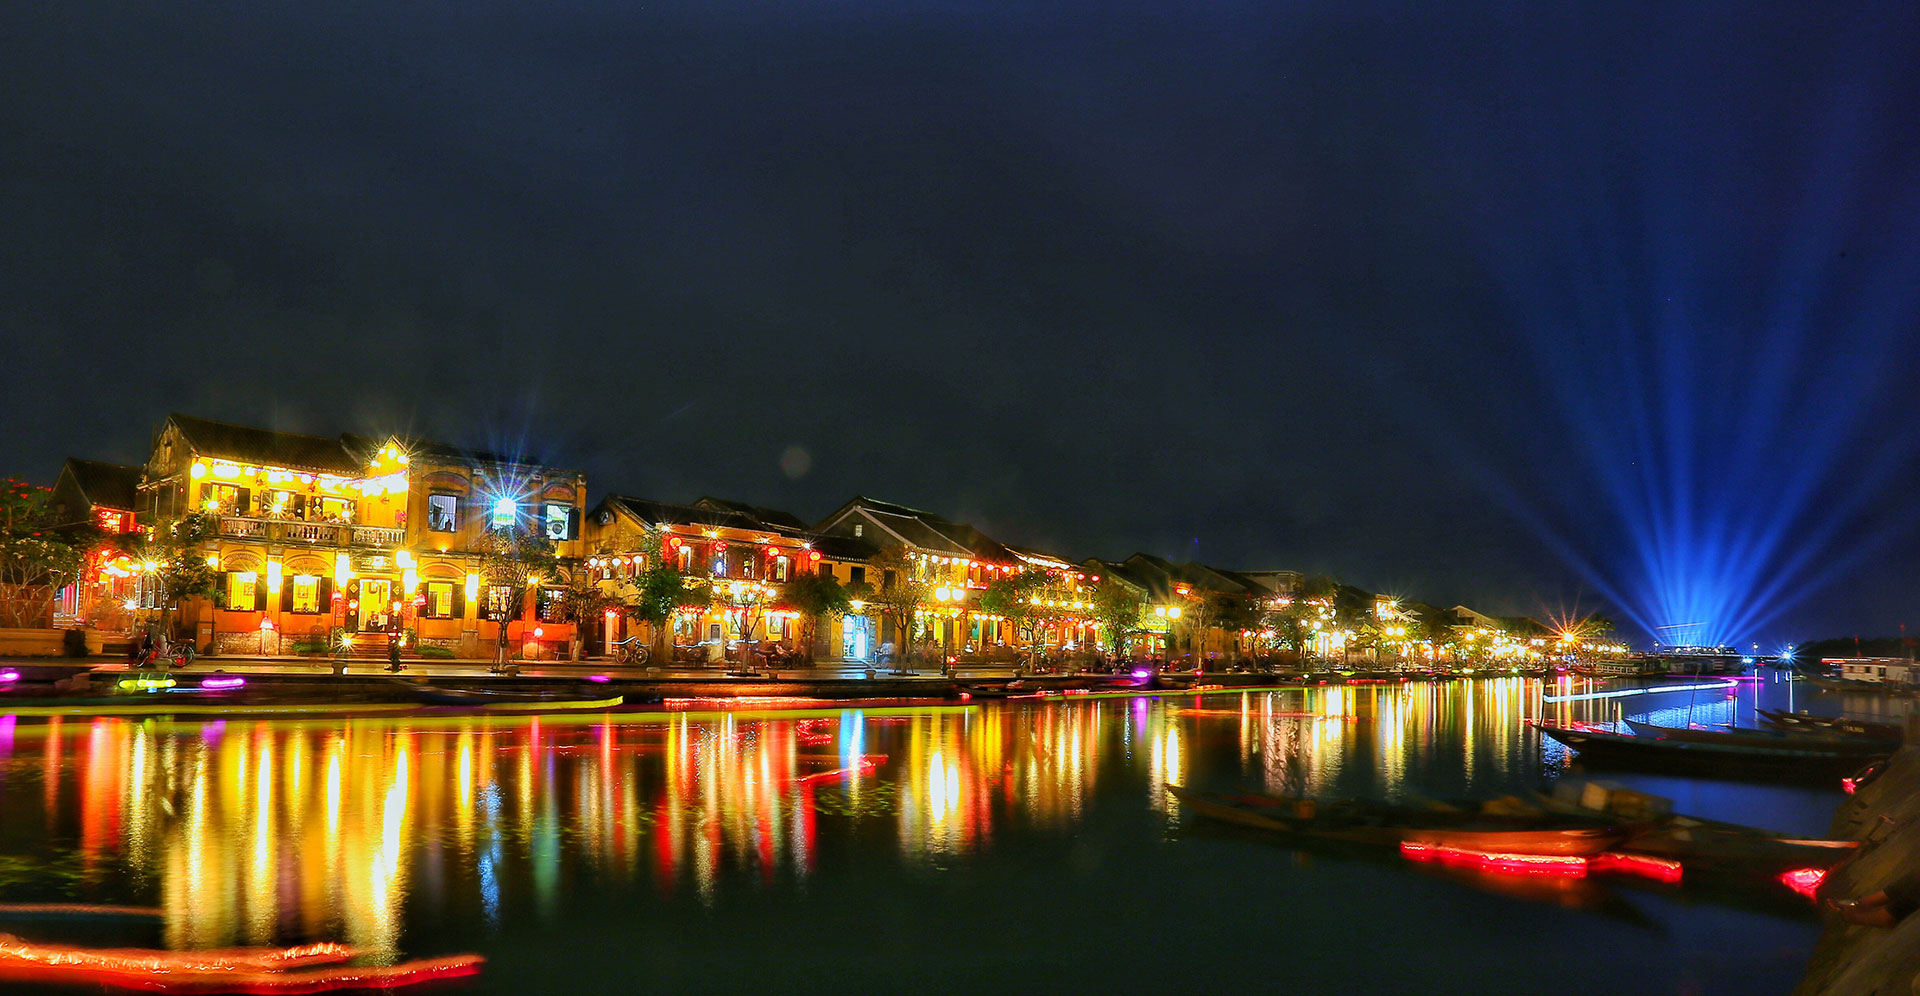 Colorful Hoi An along the river by night.